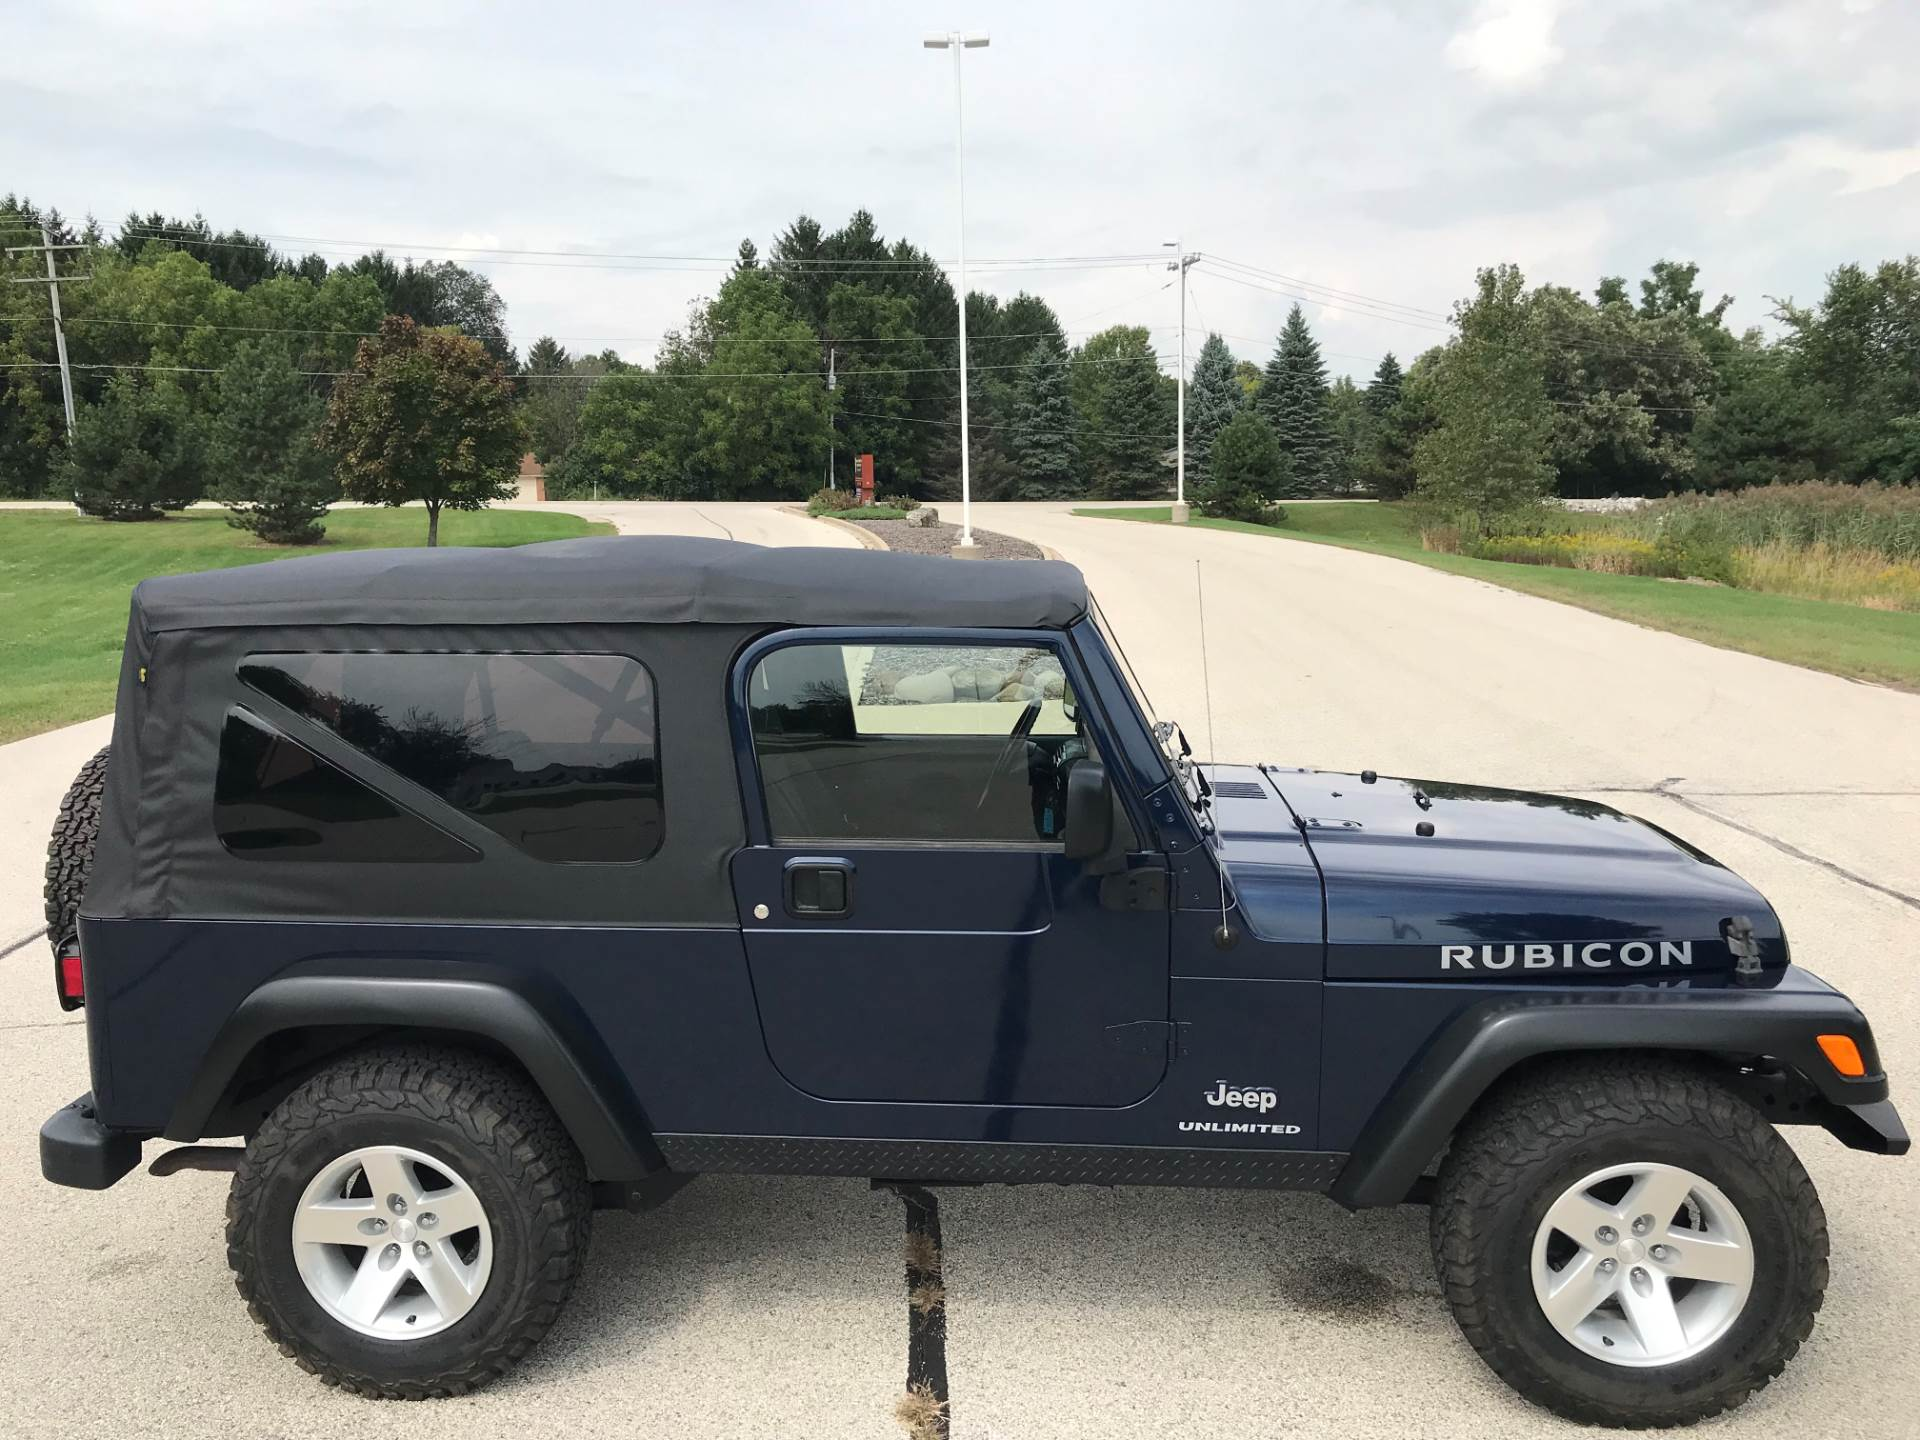 2006 Jeep Wrangler Unlimited Rubicon 2dr SUV 4WD in Big Bend, Wisconsin - Photo 37